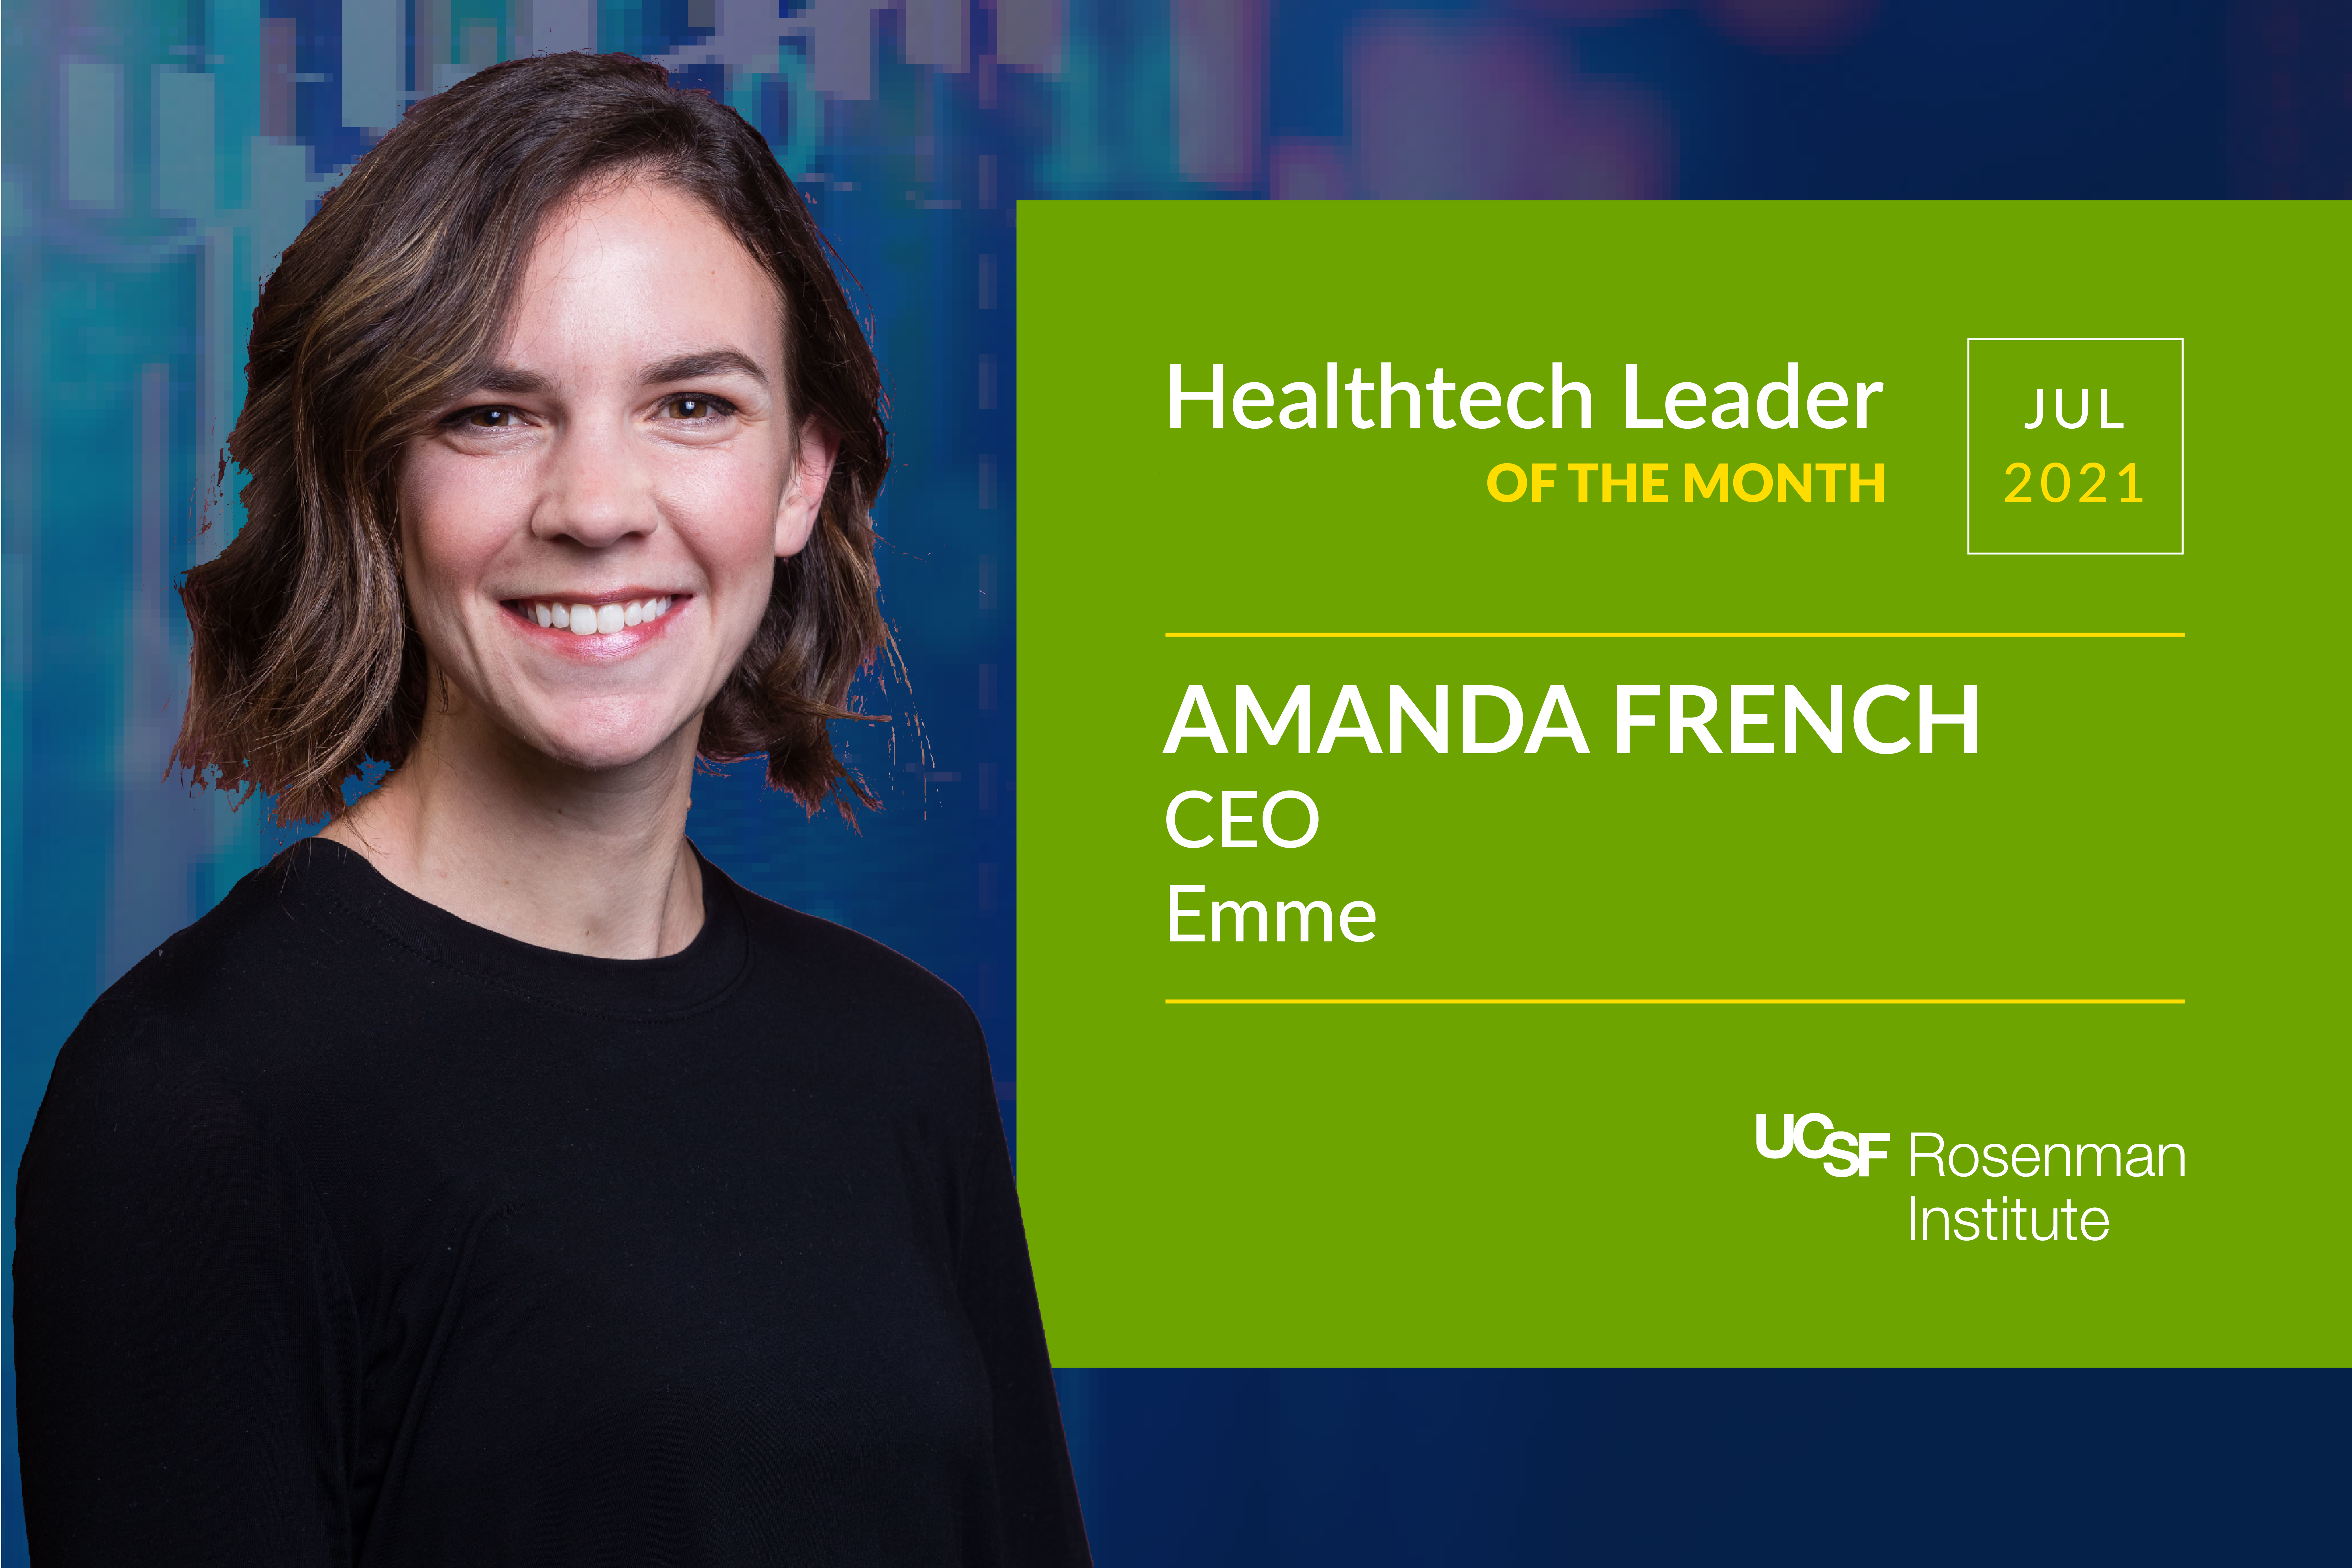 Healthtech Leader of the Month: Amanda French, CEO, Emme